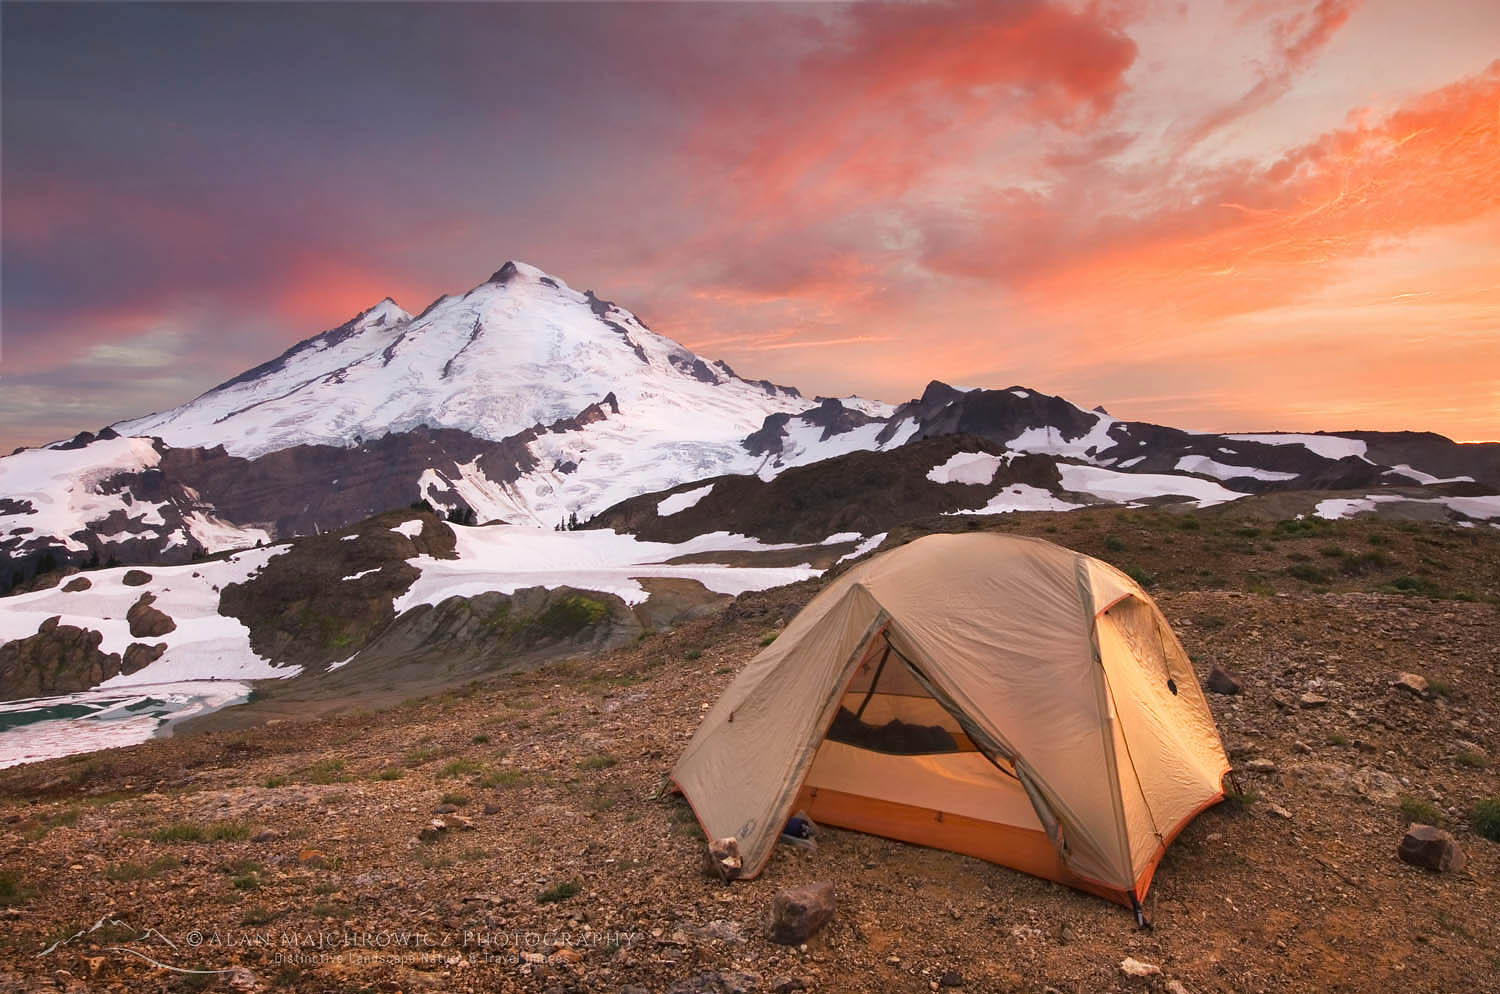 Mount Baker Wilderness Campsite